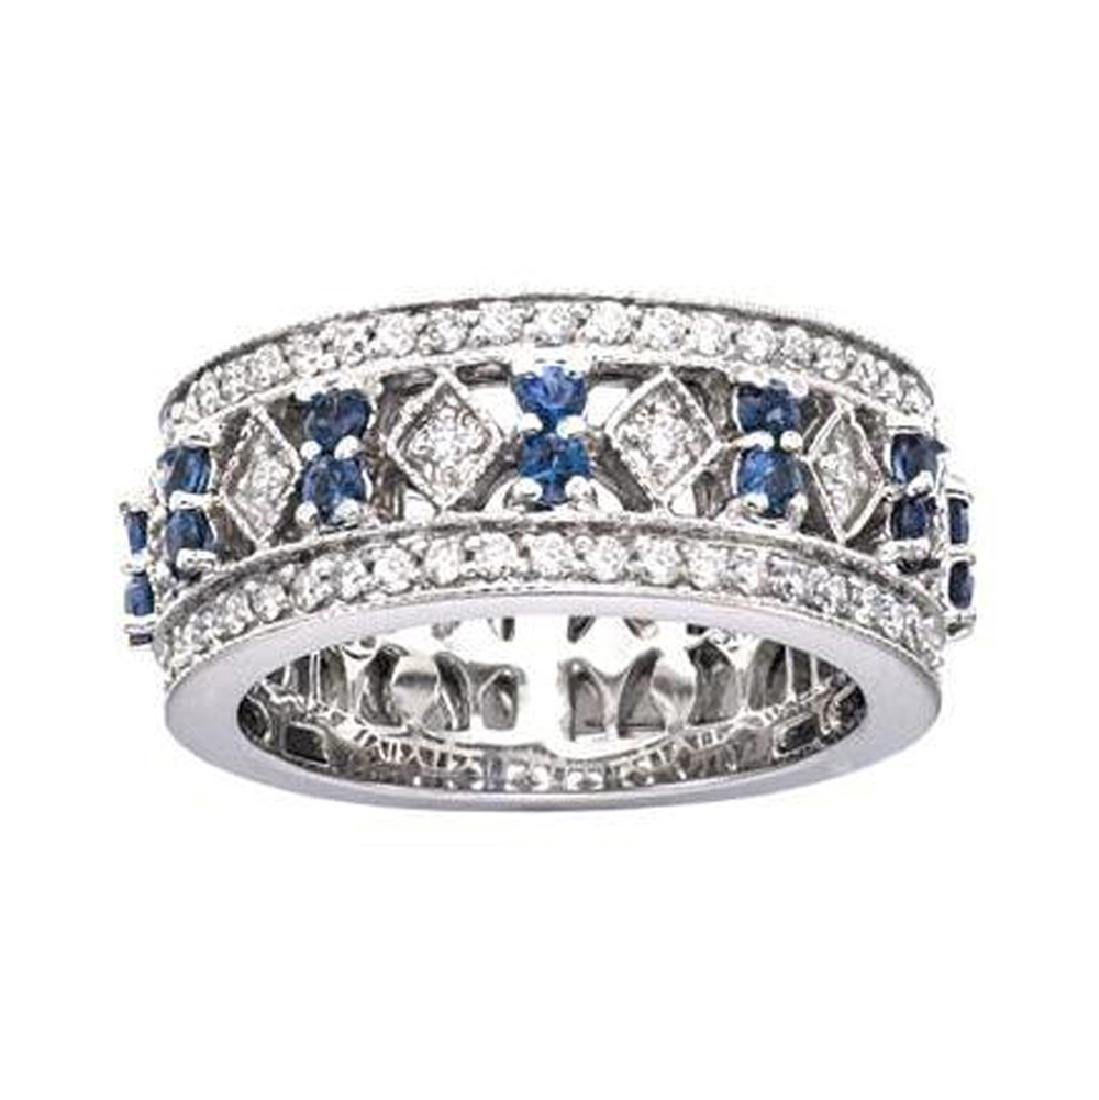 *Fine Jewelry, 14KT White Gold, 0.77CT Sapphire And